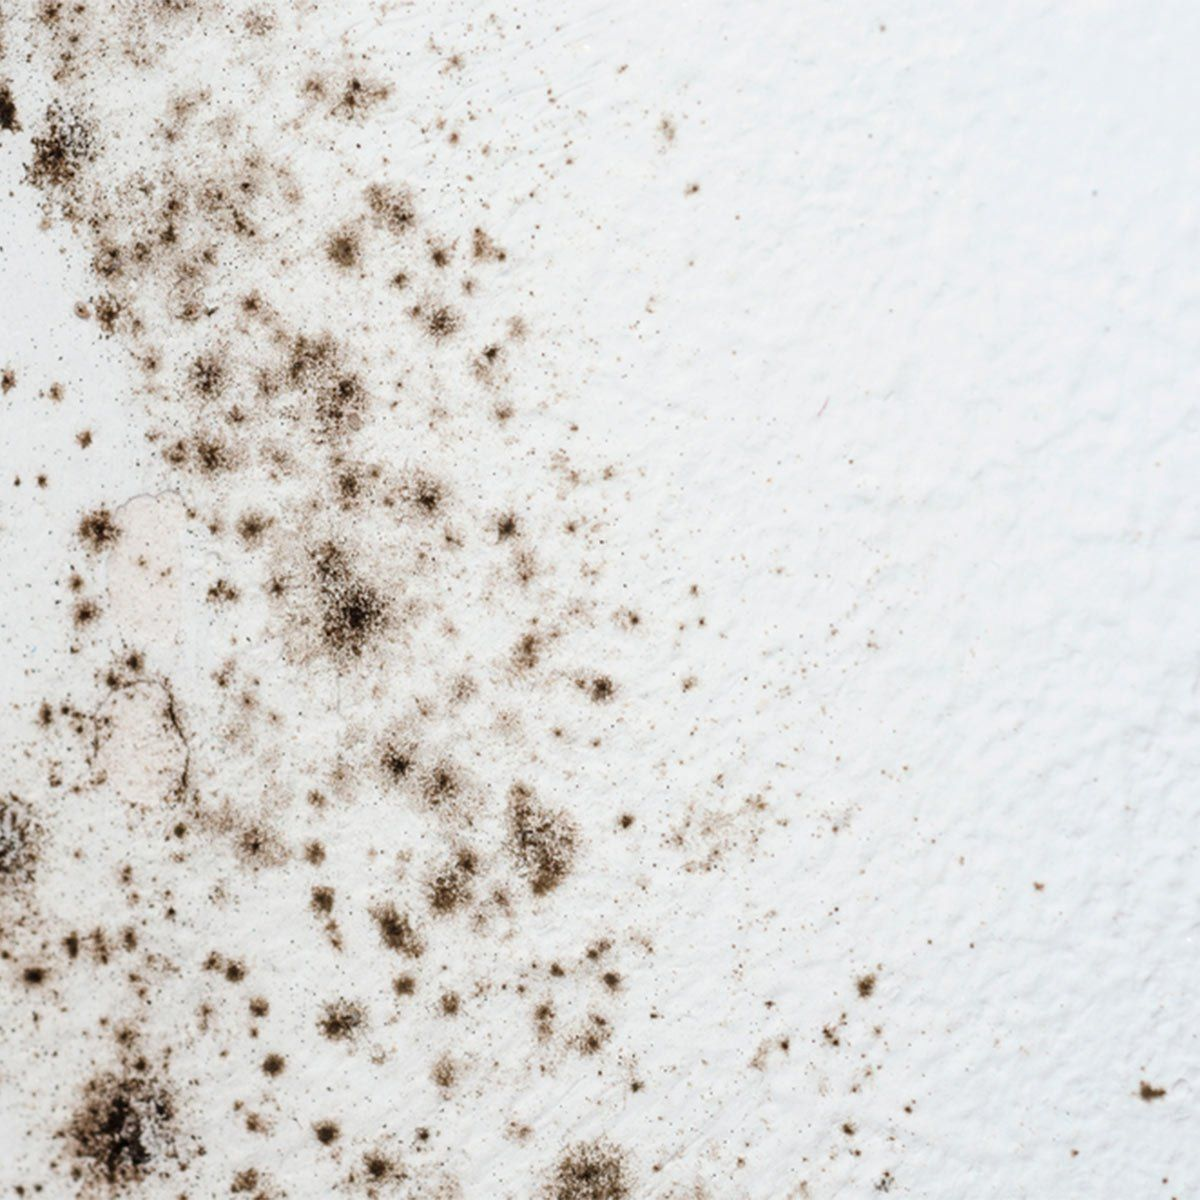 How To Get Rid Of Mold On Bathroom Walls Mold On Bathroom Ceiling Mold Remover Mold In Bathroom